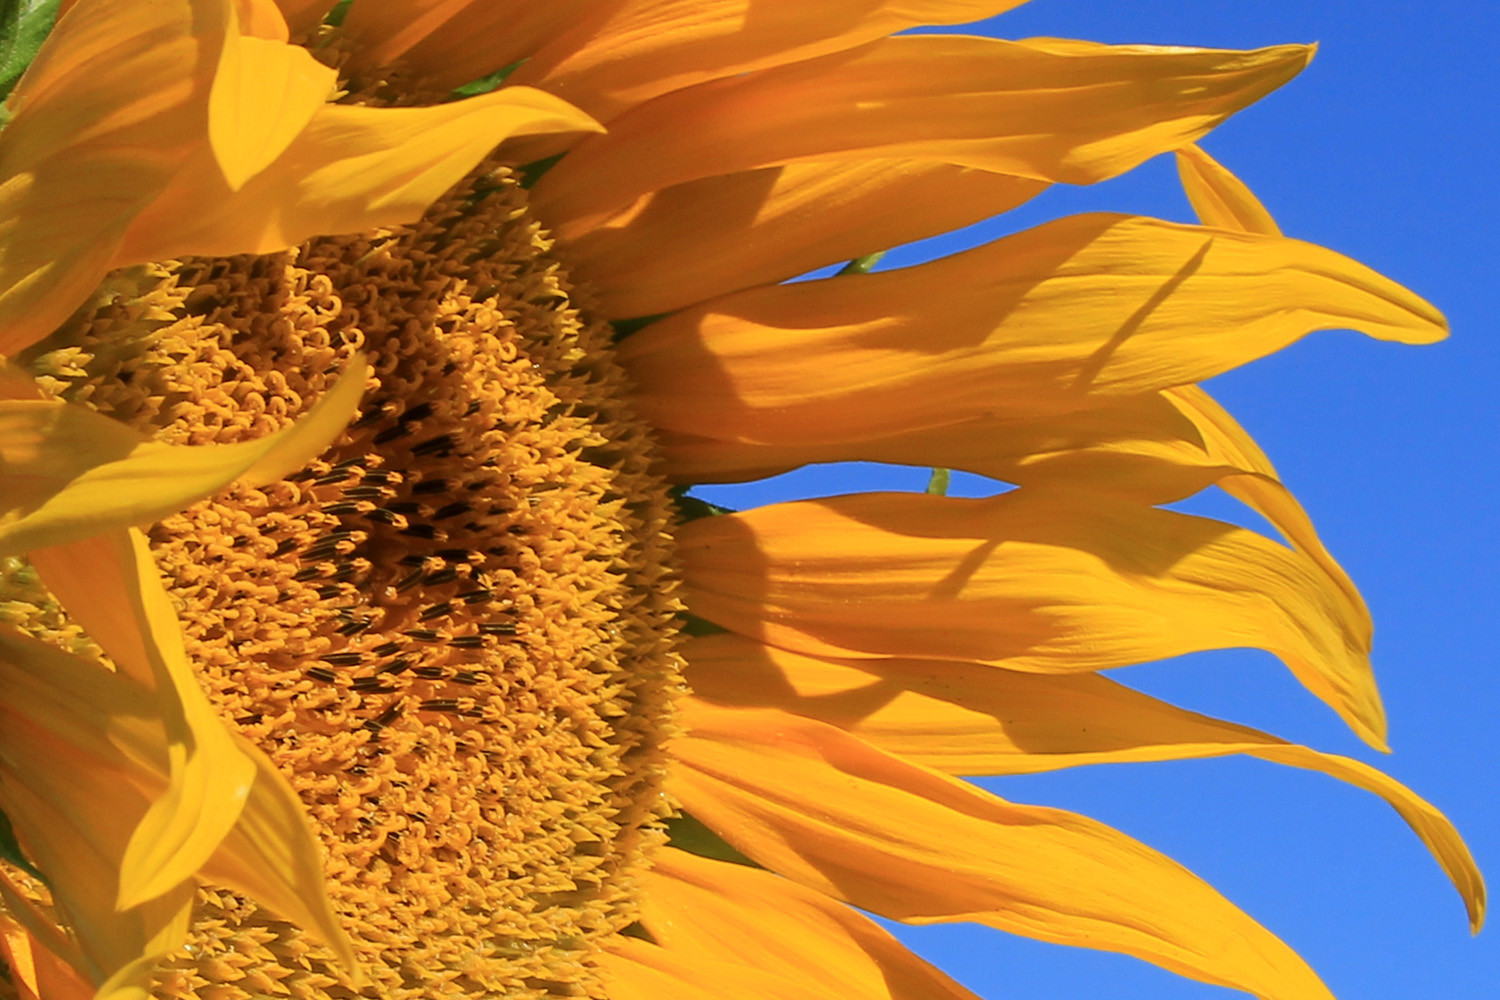 Detail of a sunflower (Domingo Pérez)